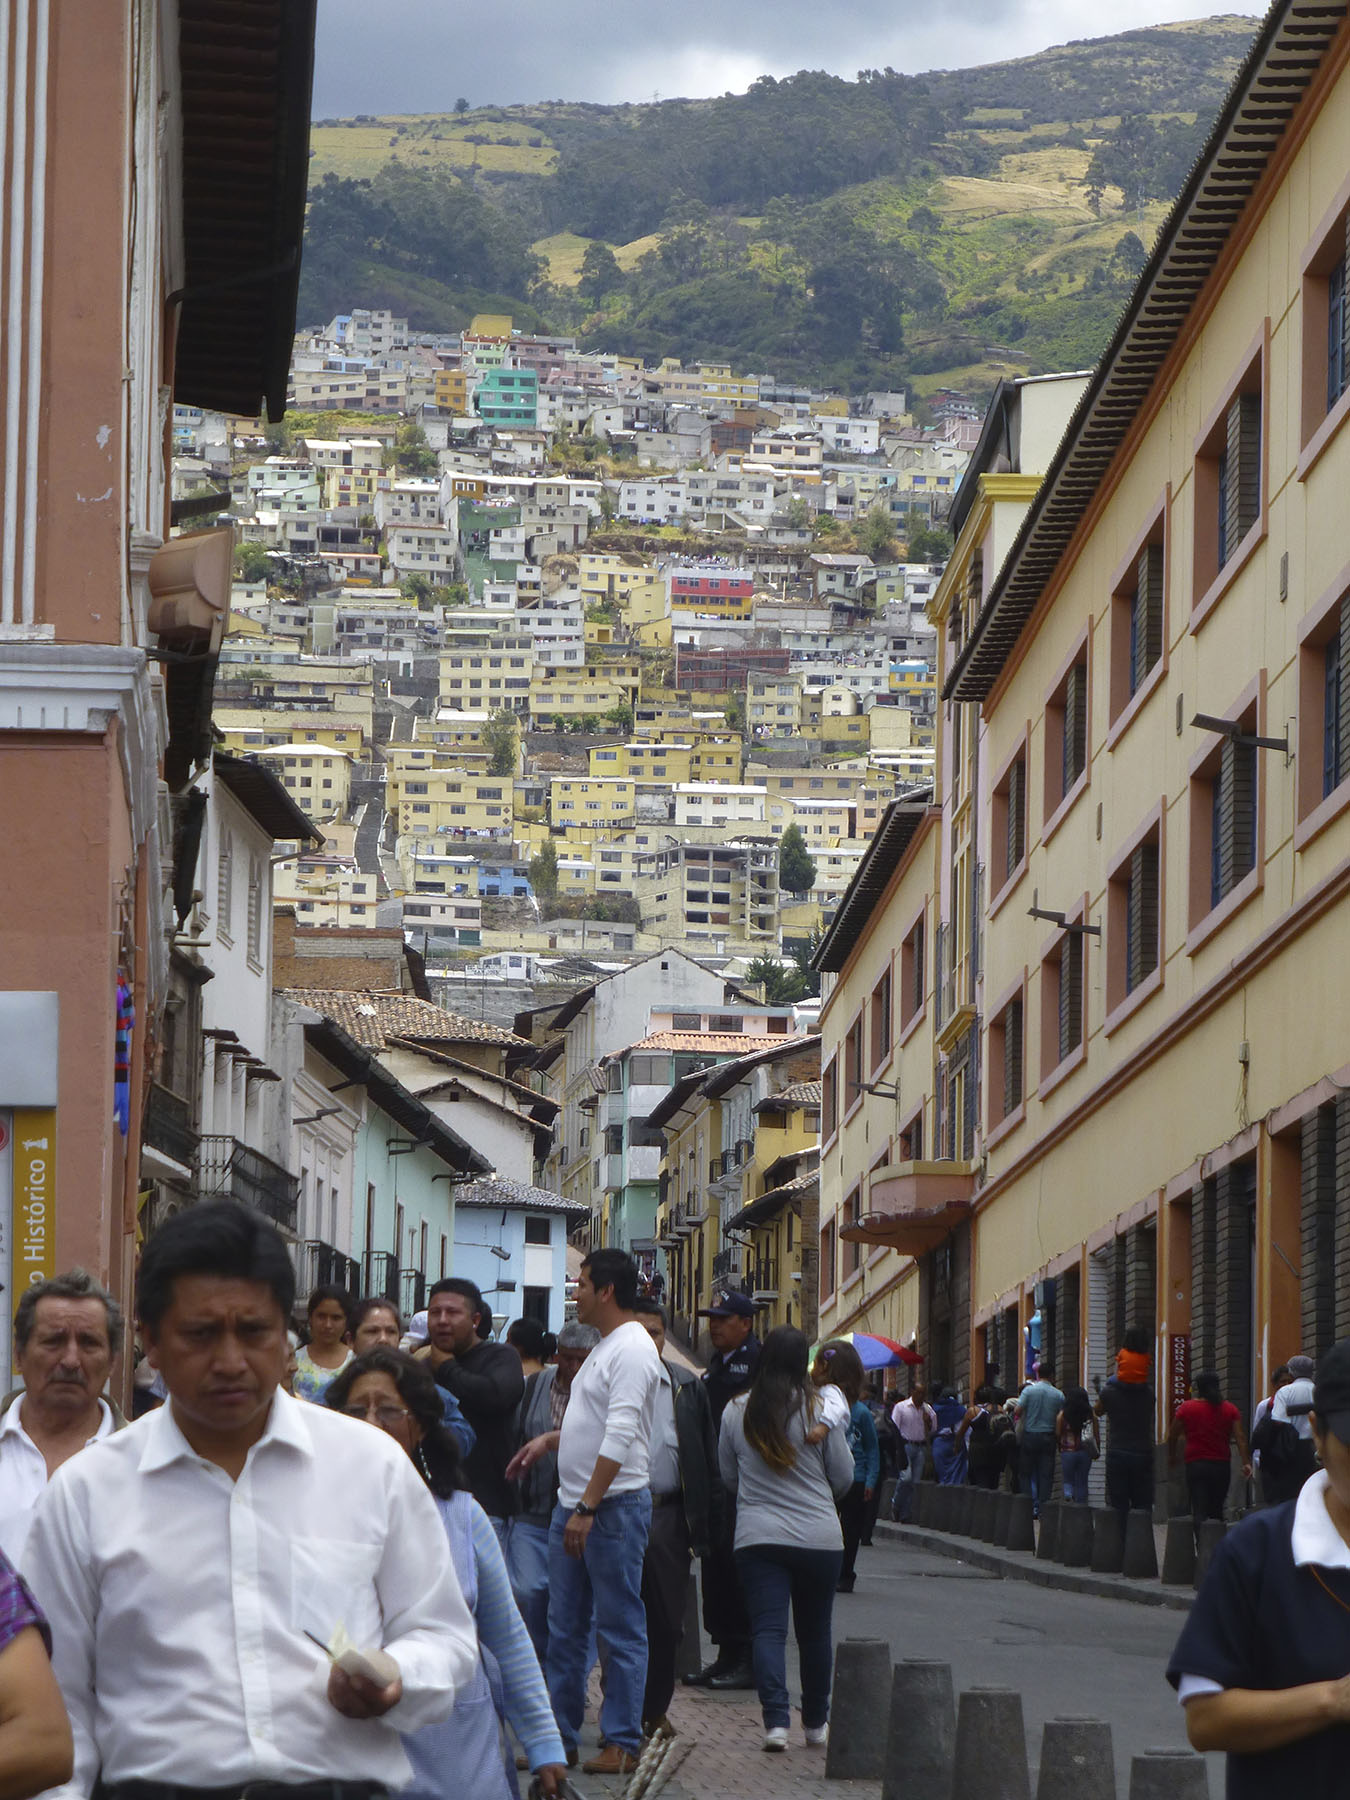 A Typical Street View In the Quito Historic District.